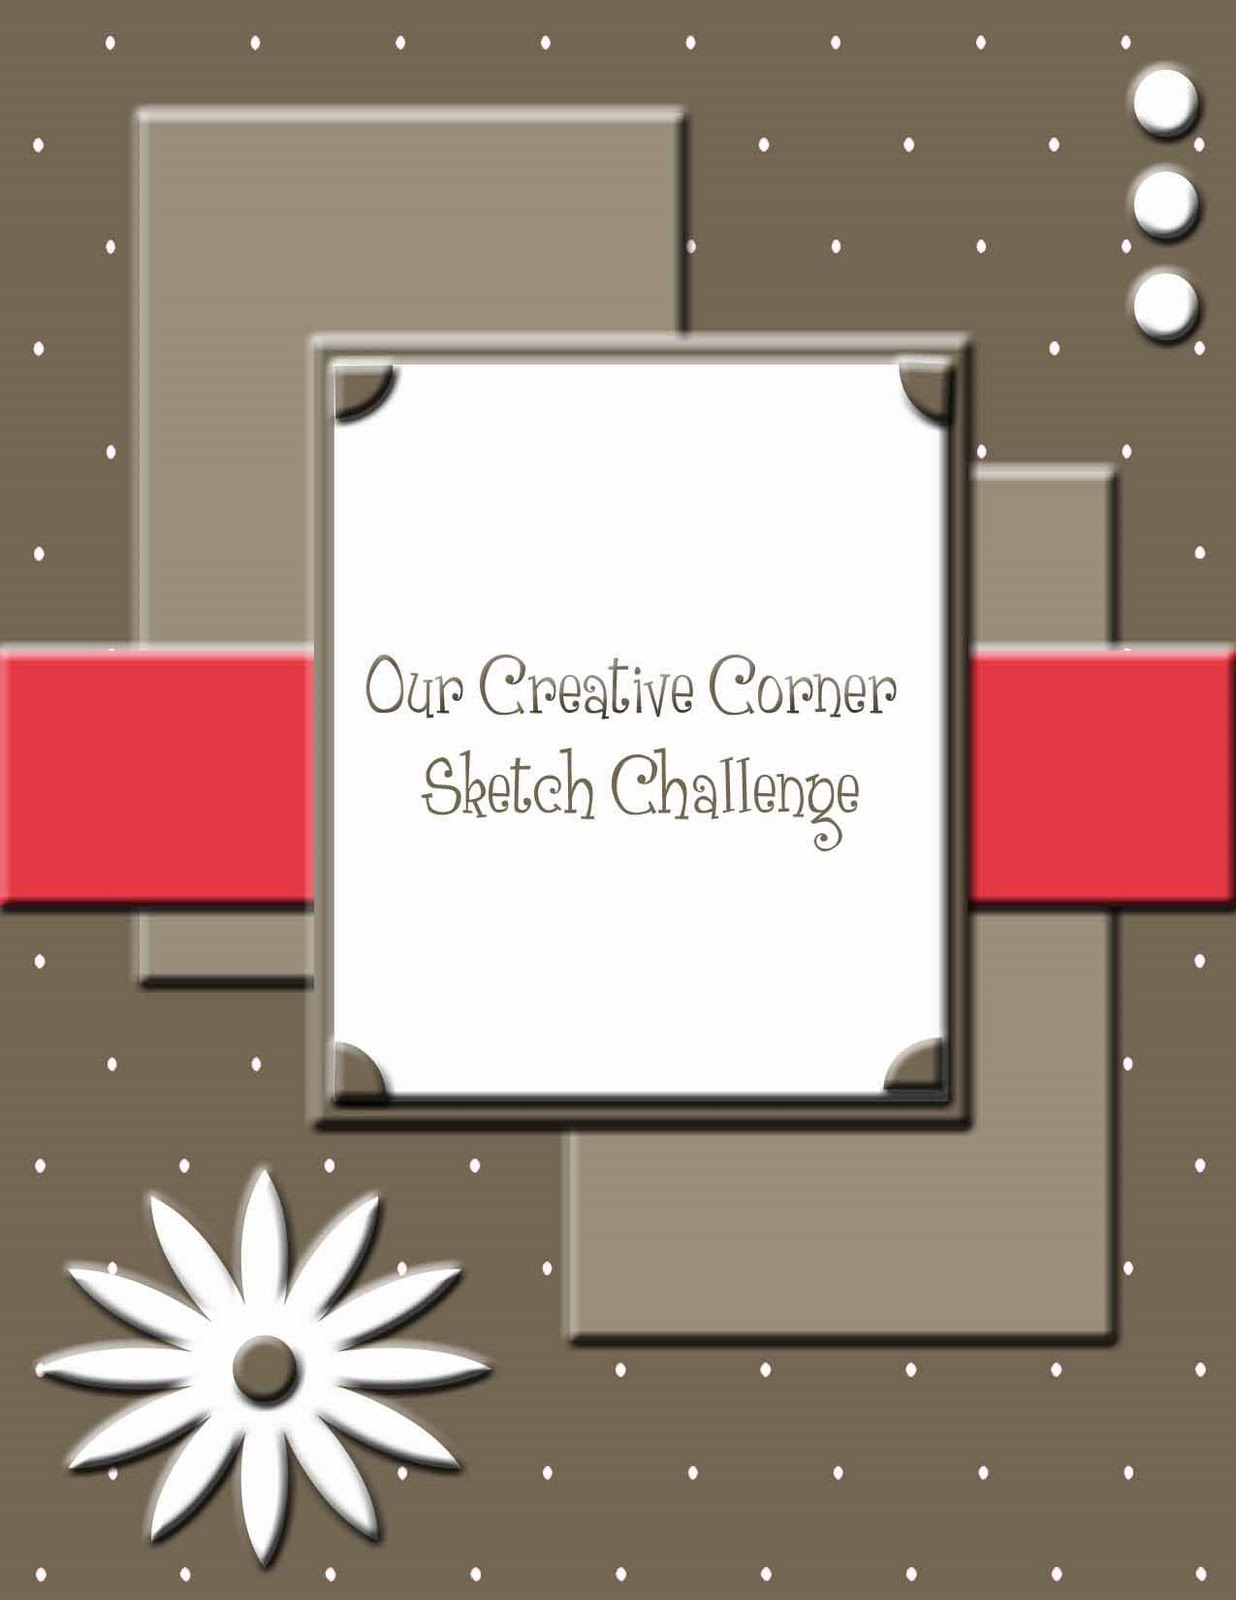 [OCC+Sketch+Challenge+-+Designed+by+Linda+Coughlin]